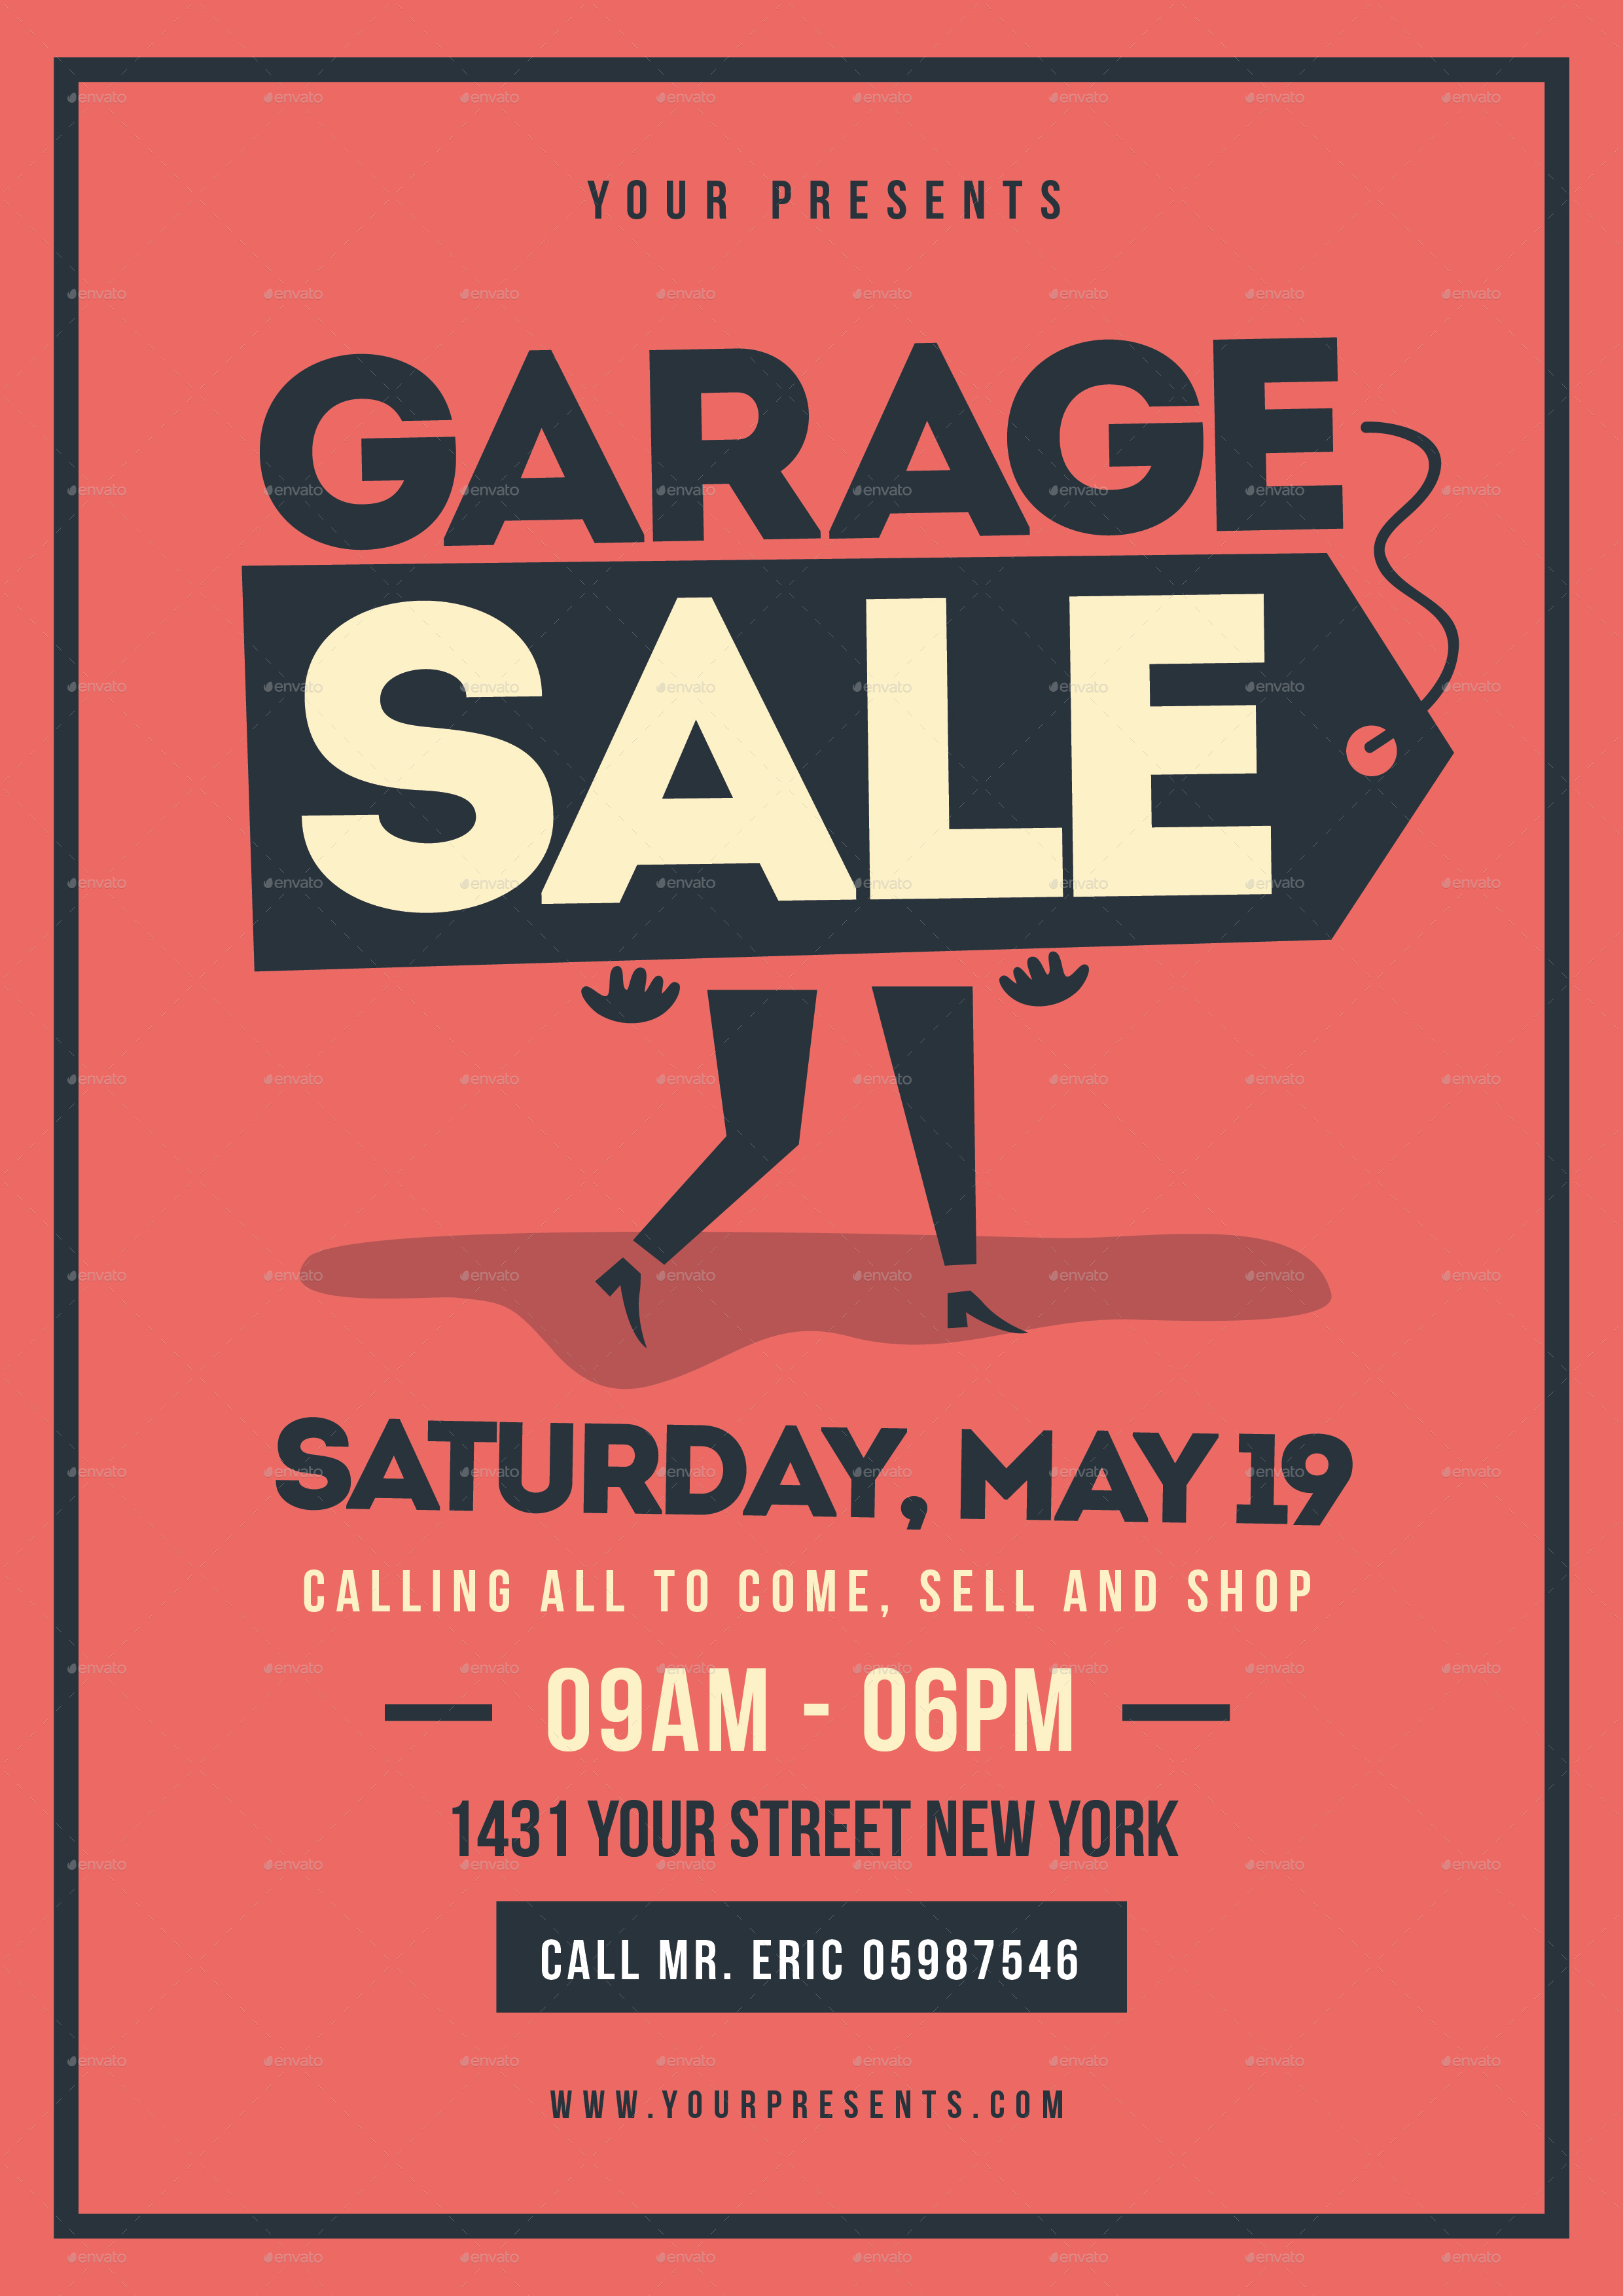 retro garage sale flyer by lilynthesweetpea graphicriver church logos free psd church logos free svg